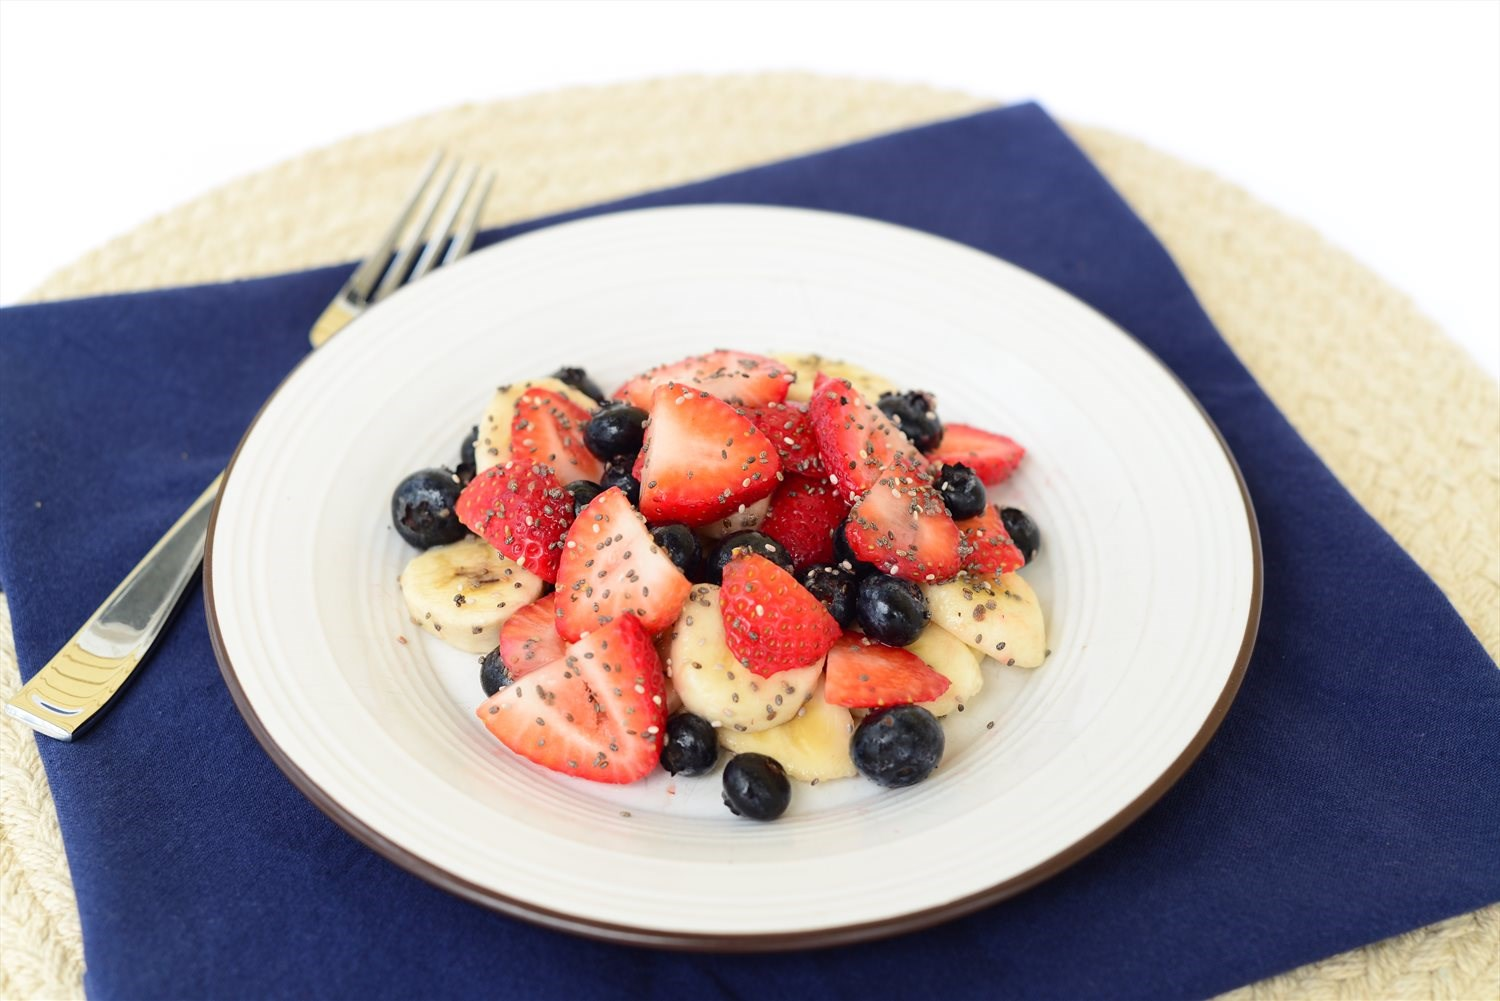 Banana Berry Salad